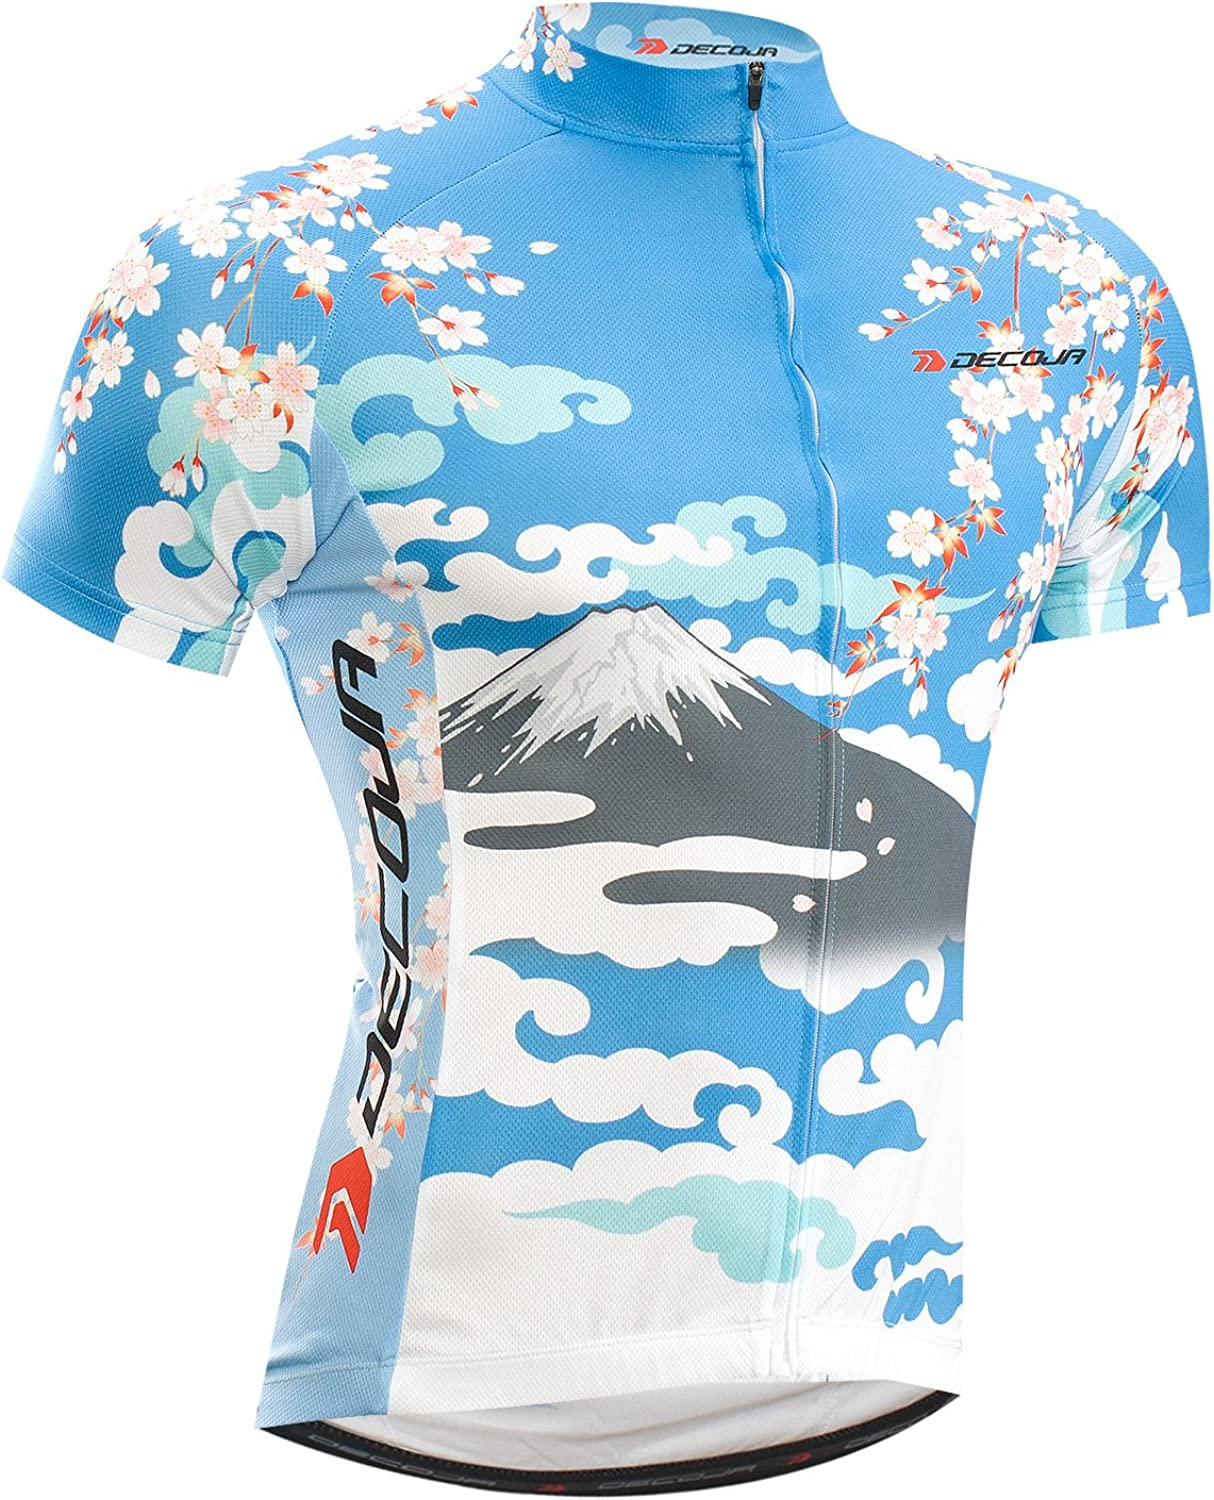 DECOJA Short Sleeve Cycling Jersey Japanese Style